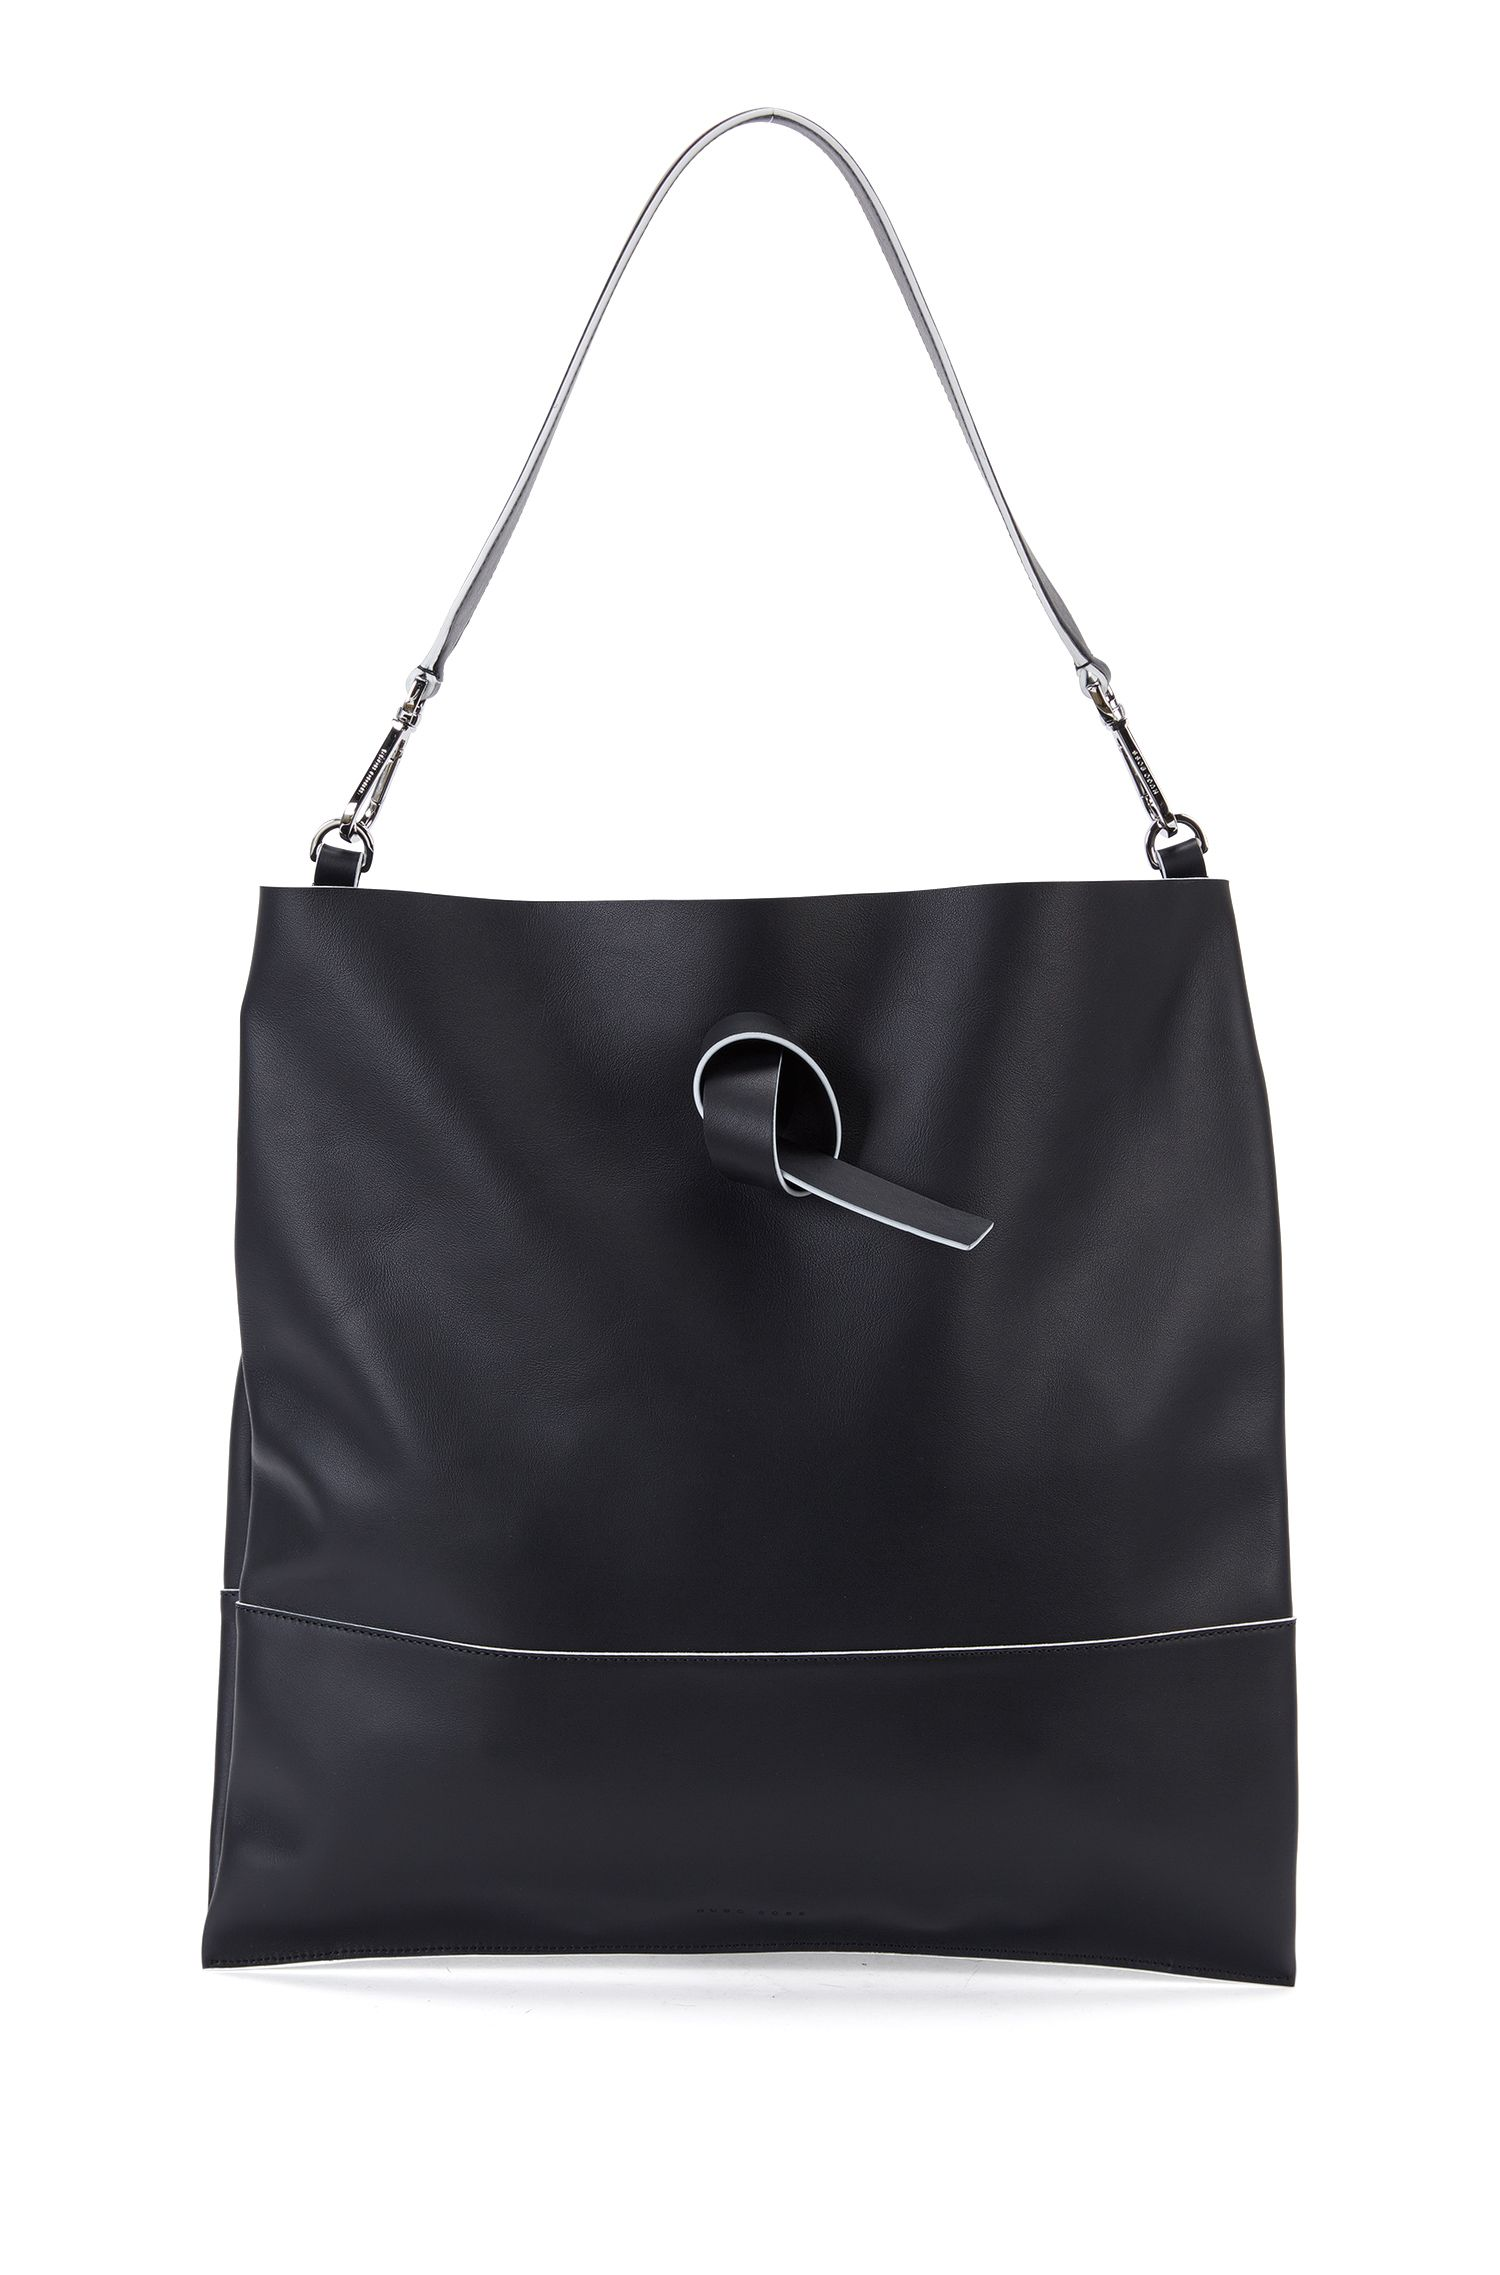 Italian Leather Handbag | Modern Day Tote, Black